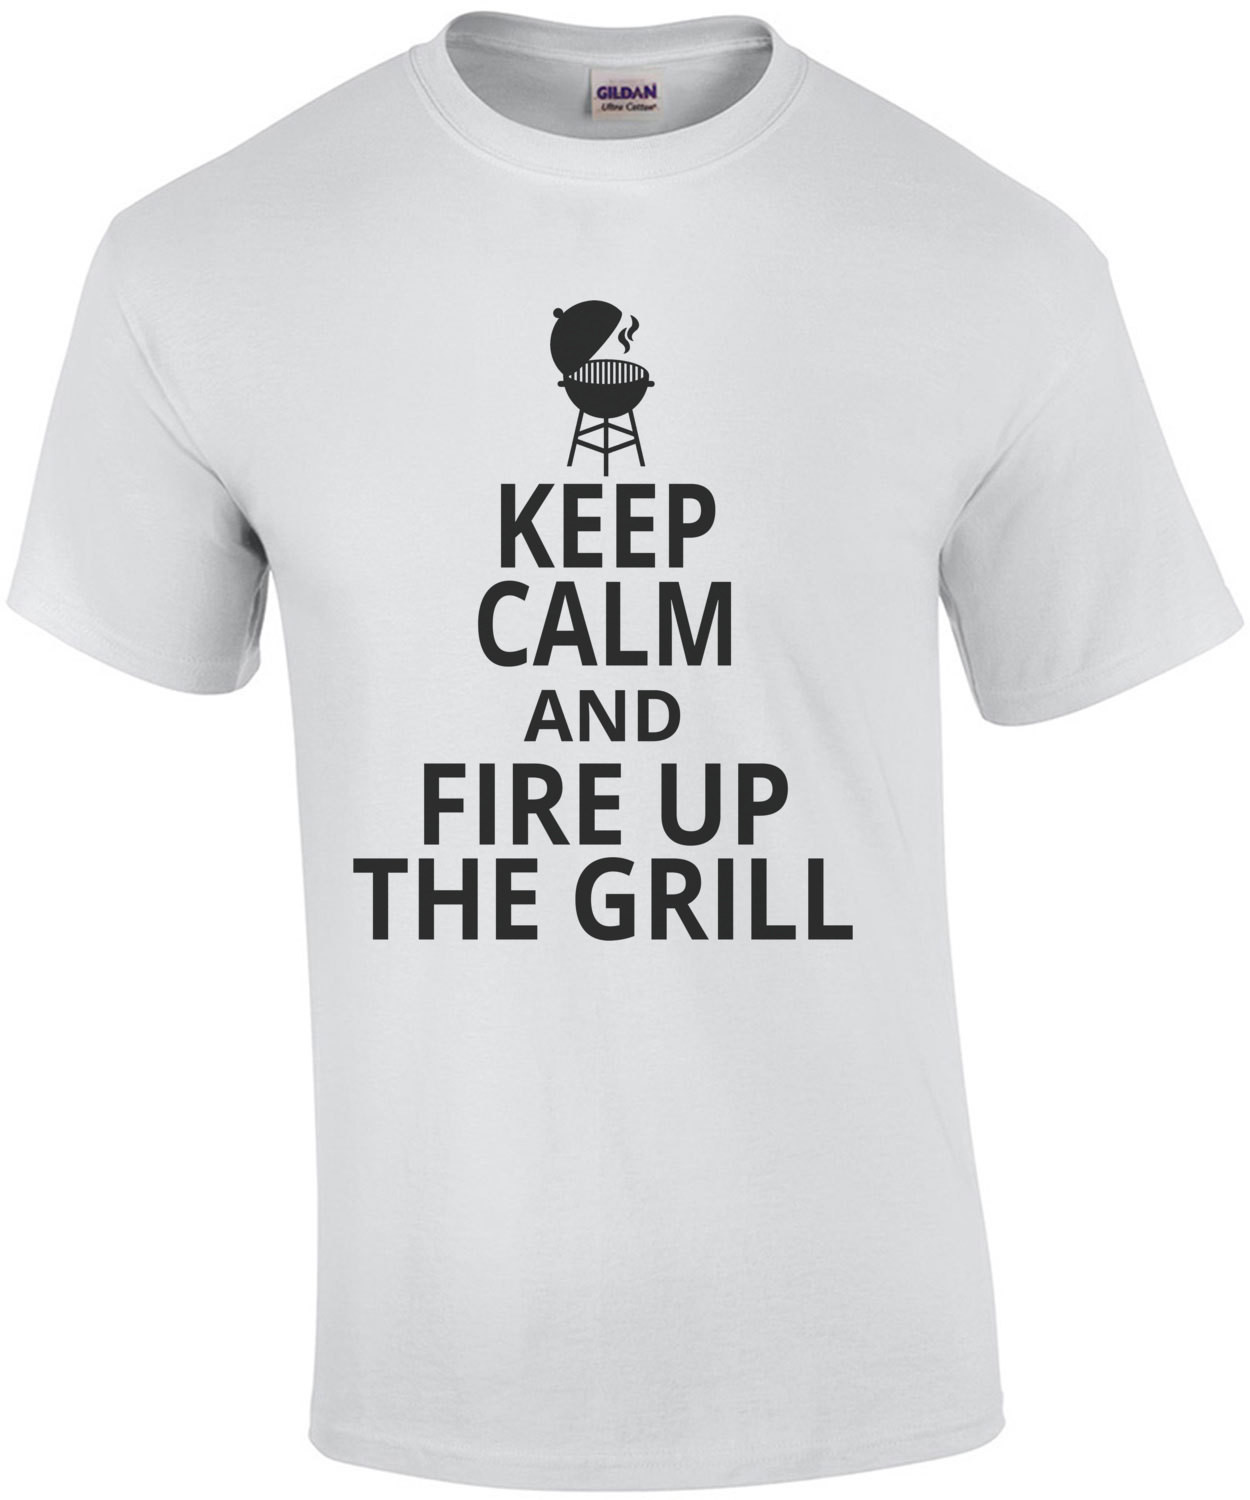 Keep Calm And Fire Up The Grill T-Shirt